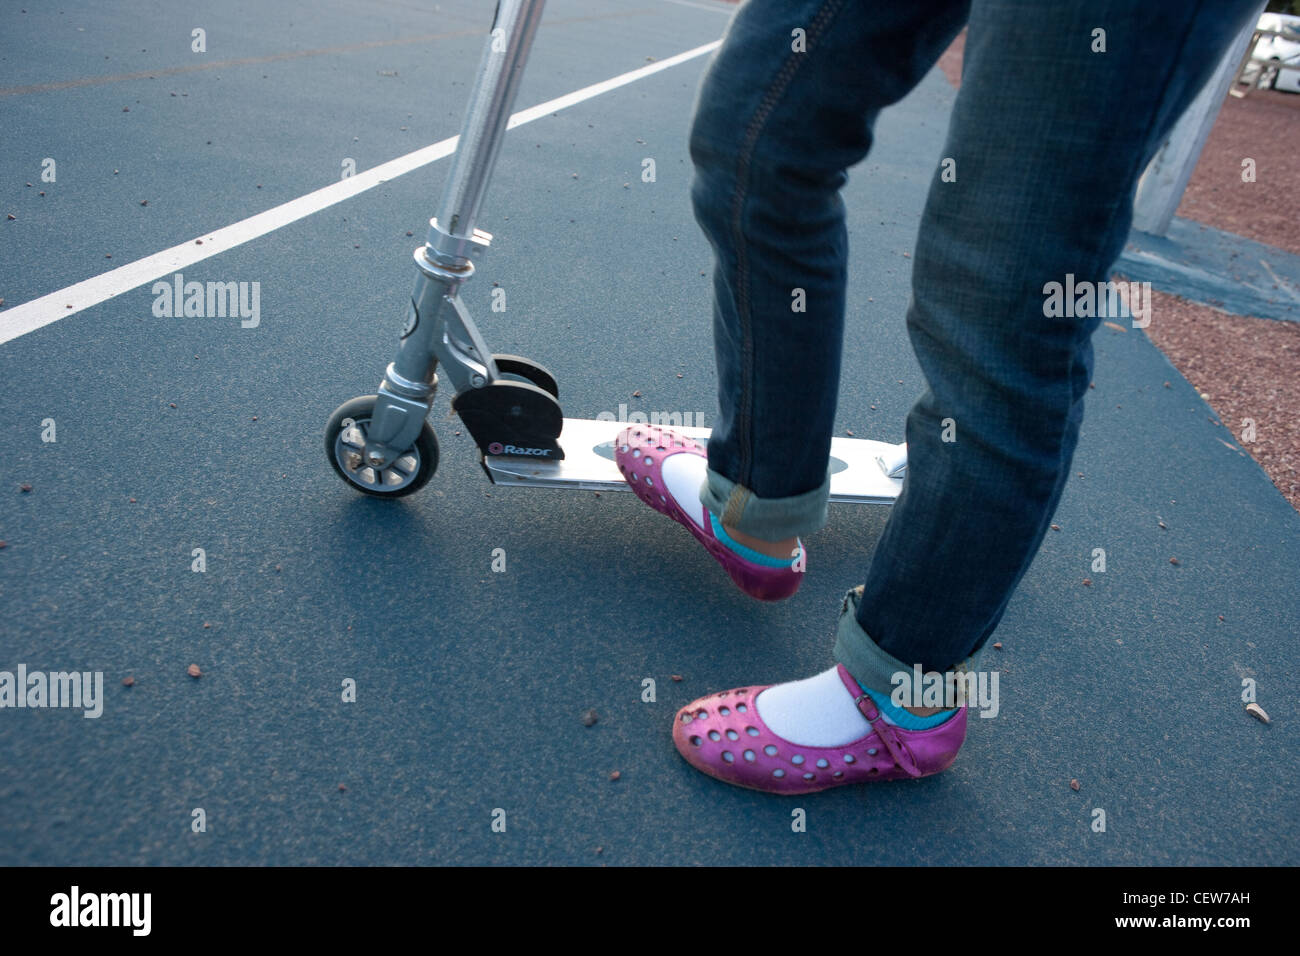 Girl wearing pink sandals riding a scooter Stock Photo